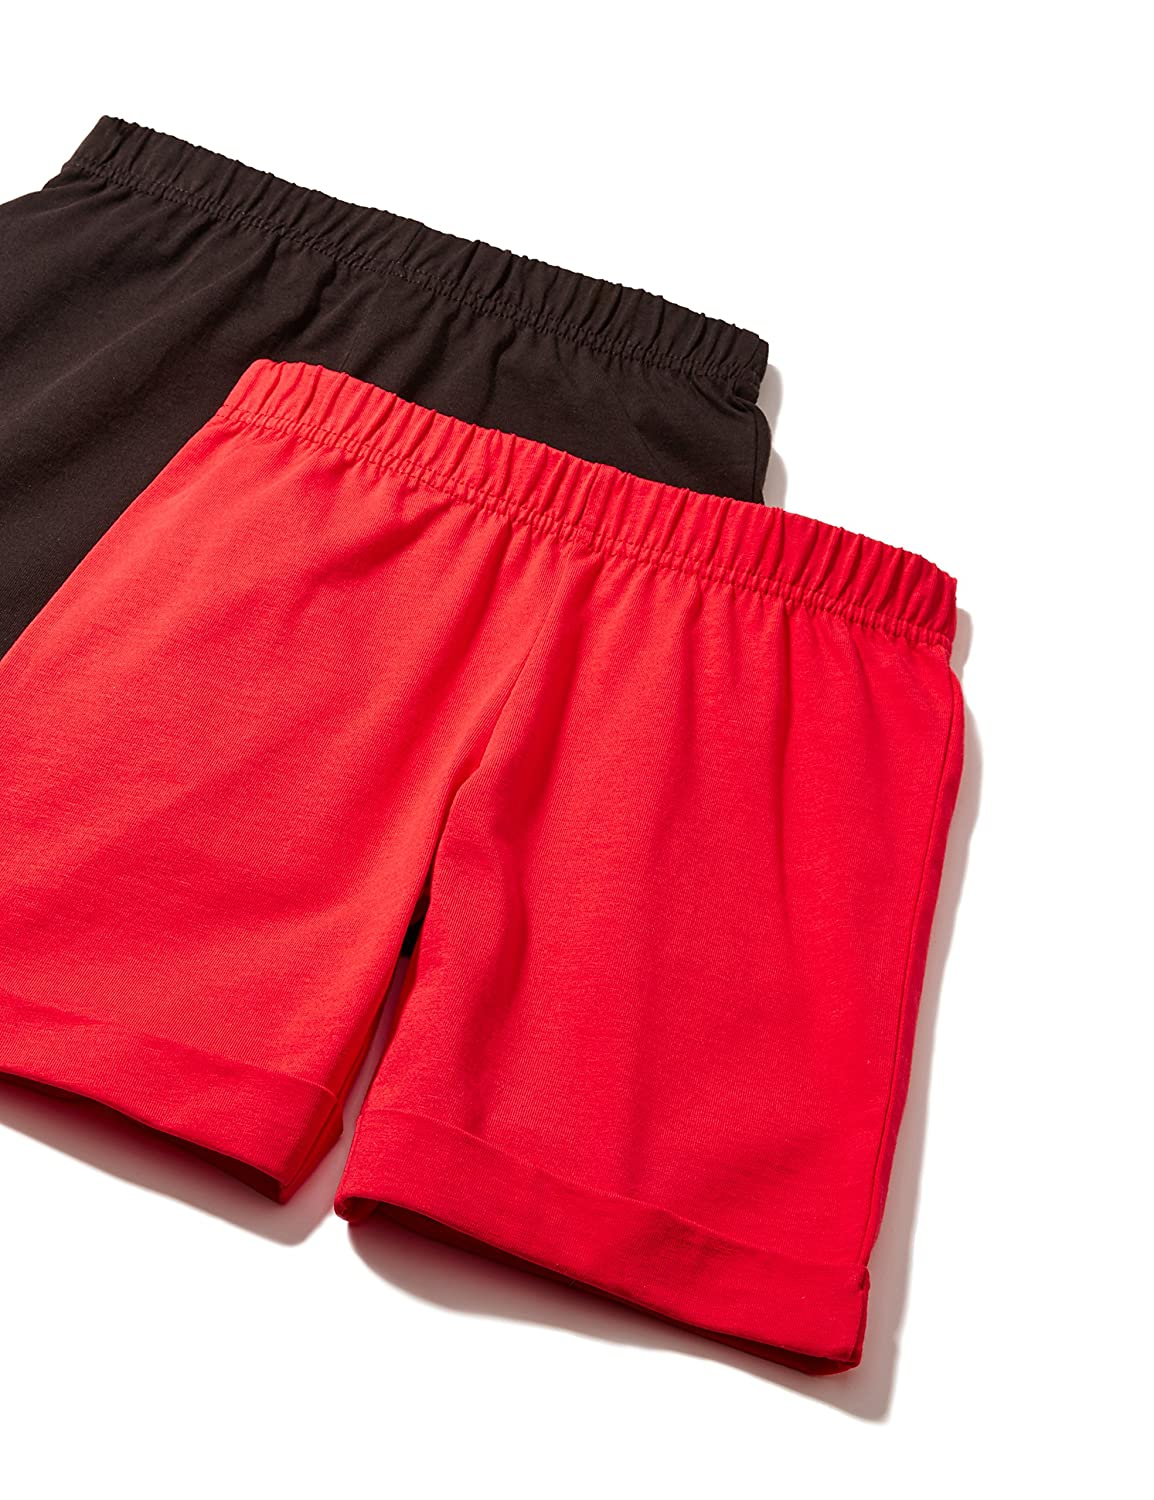 RED WAGON Girl's Jersey Shorts Two-Pack 2602